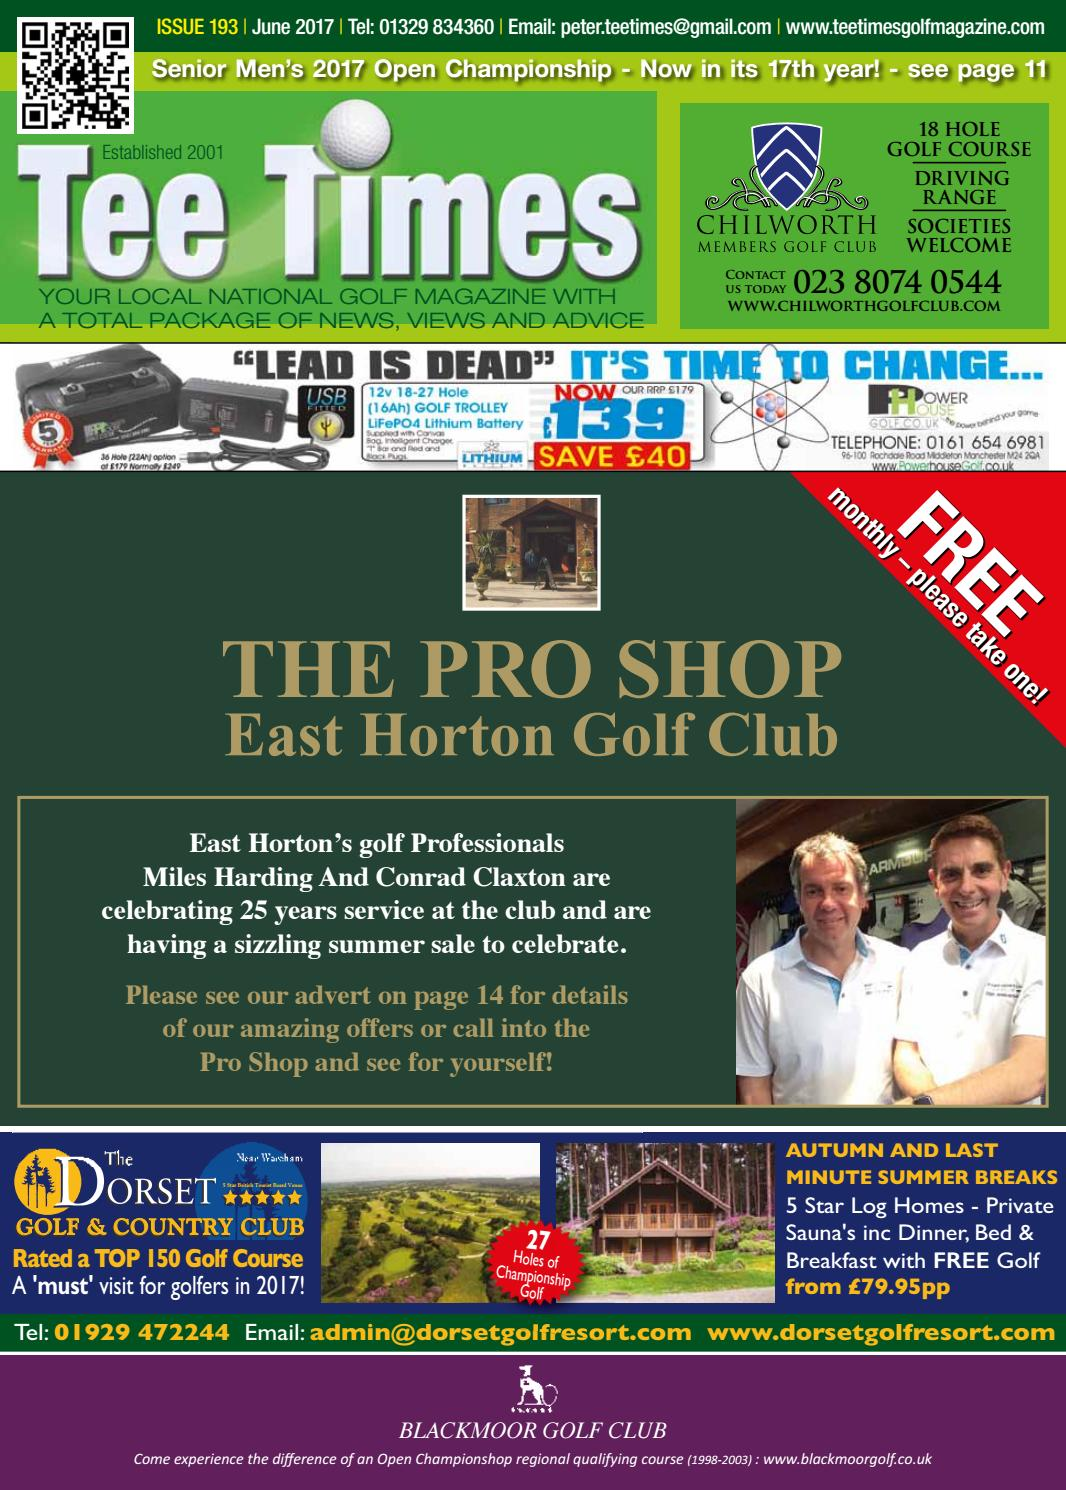 Tee Times Golf Magazine, June 2017 by Tee Times Golf